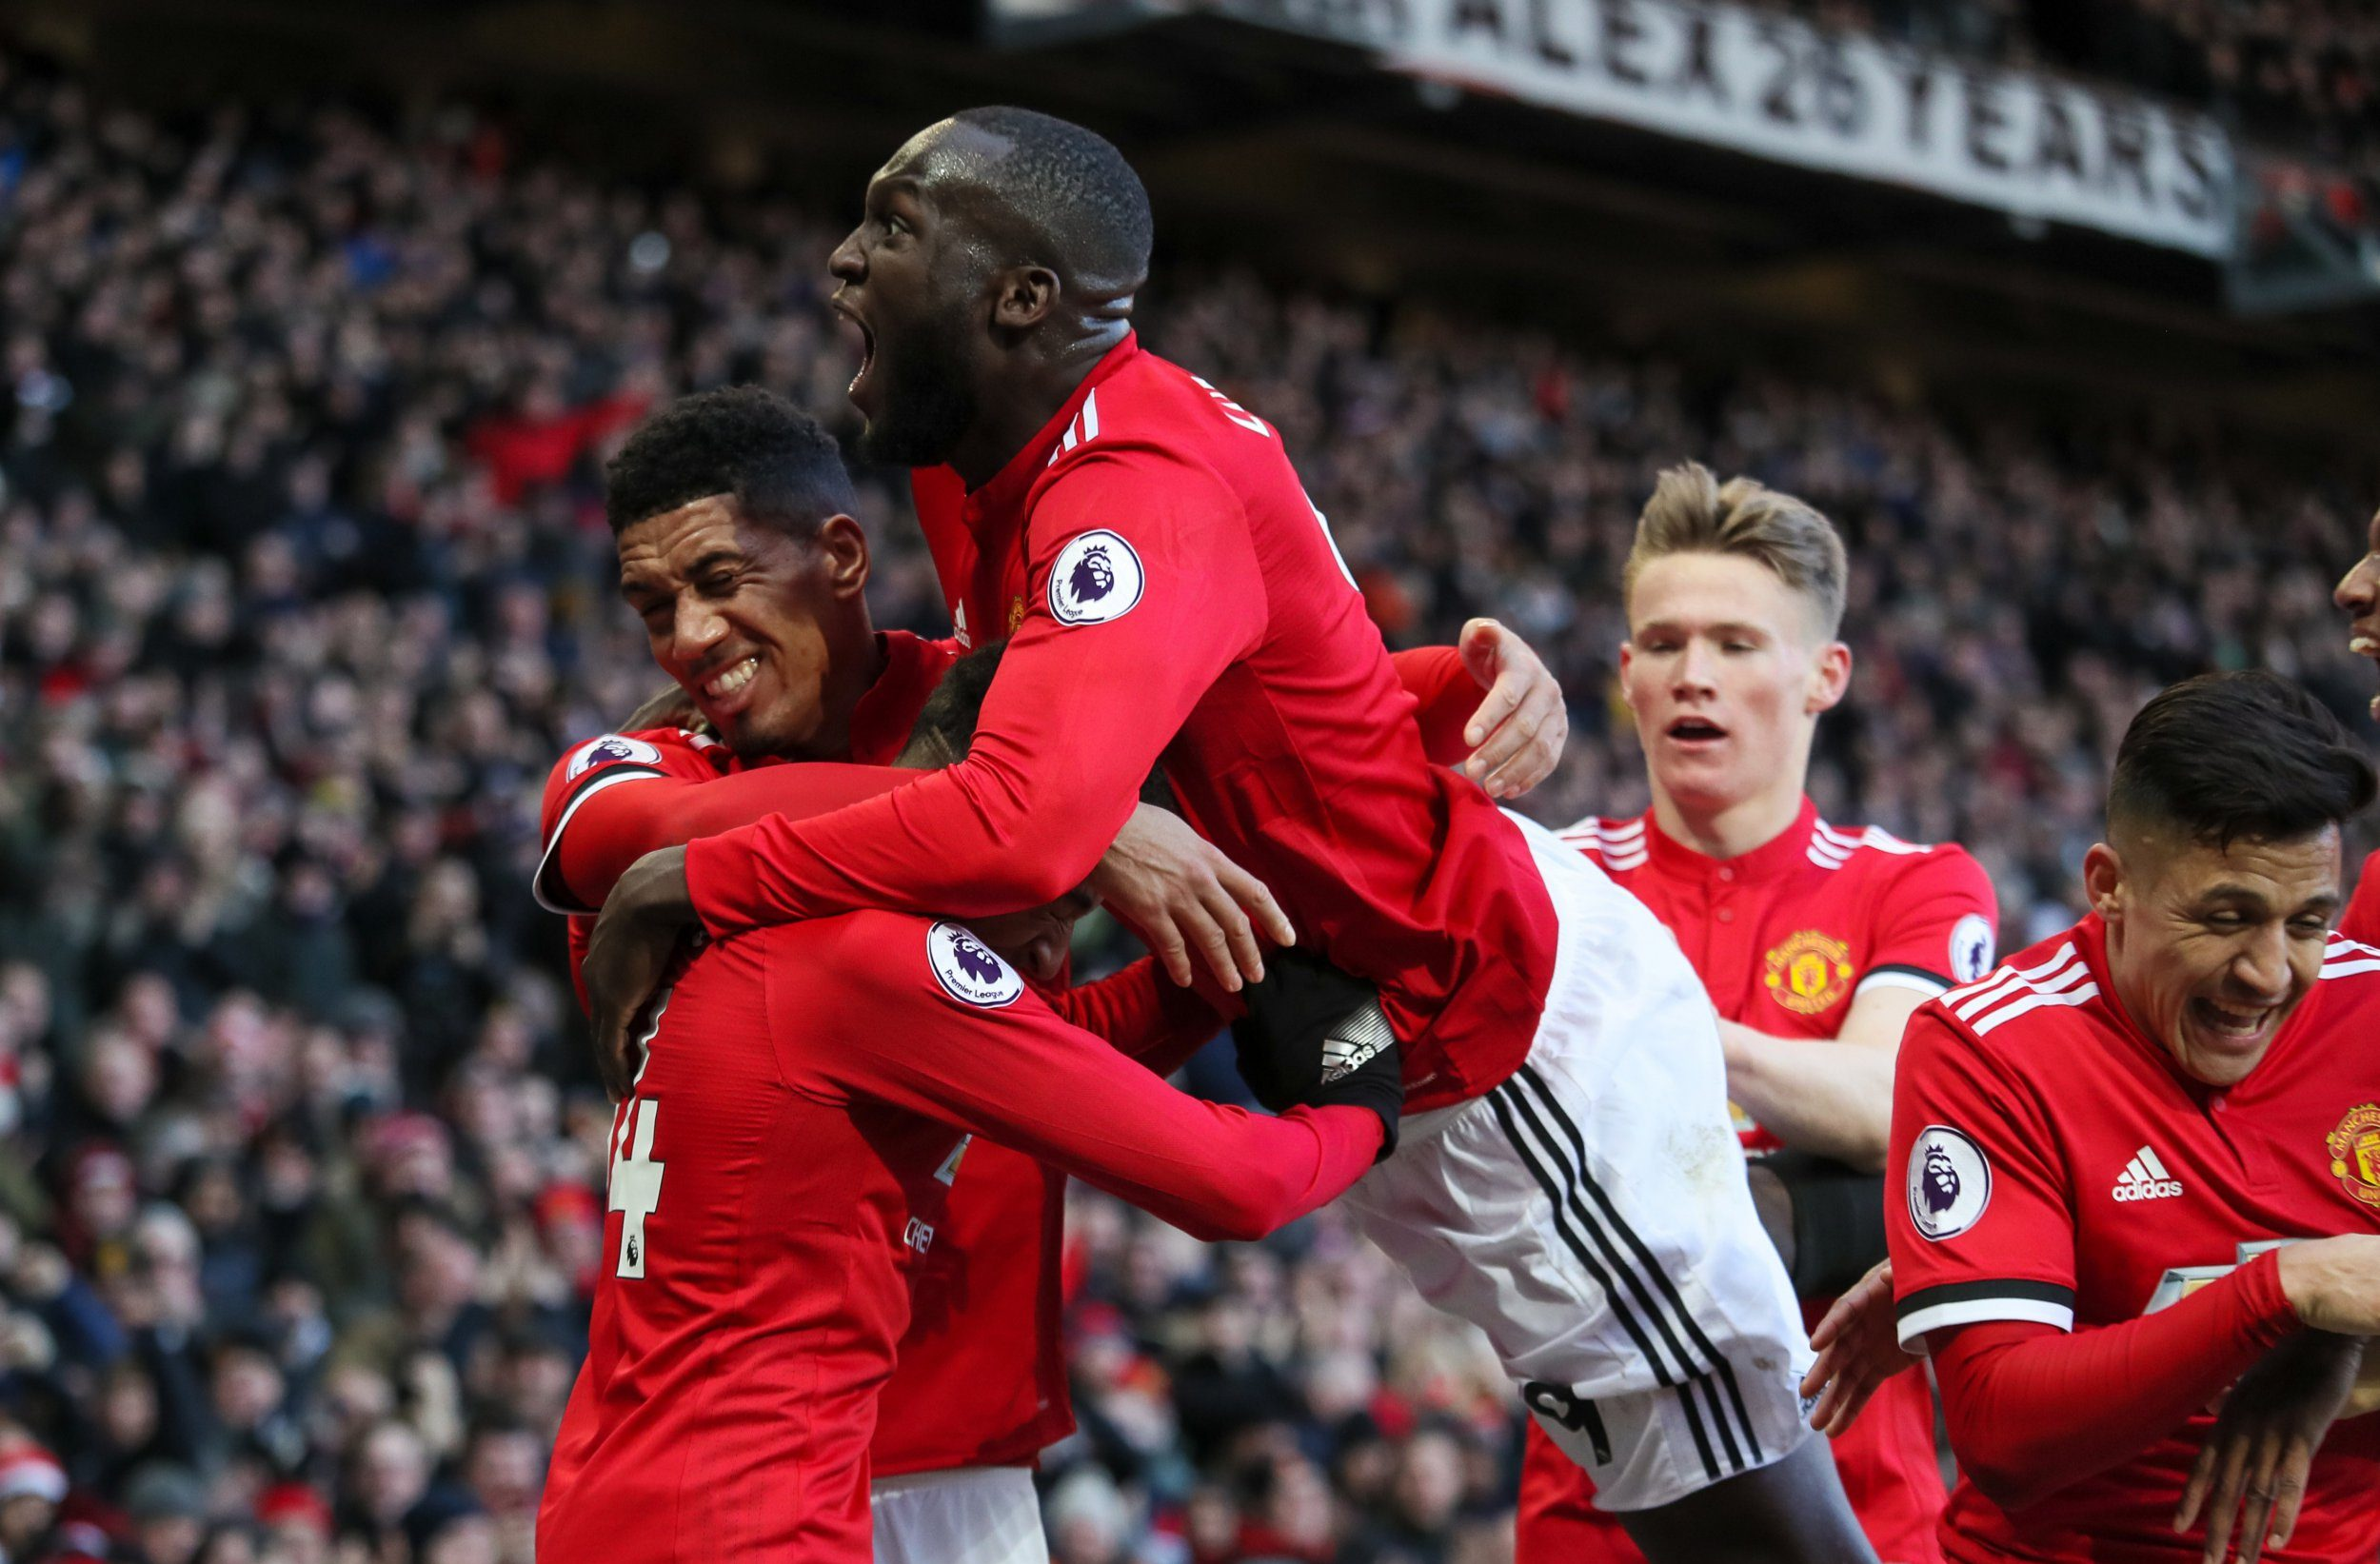 MANCHESTER, ENGLAND - FEBRUARY 25: Jesse Lingard of Manchester United celebrates after scoring a goal to make it 2-1 during the Premier League match between Manchester United and Chelsea at Old Trafford on February 25, 2018 in Manchester, England. (Photo by Matthew Ashton - AMA/Getty Images)